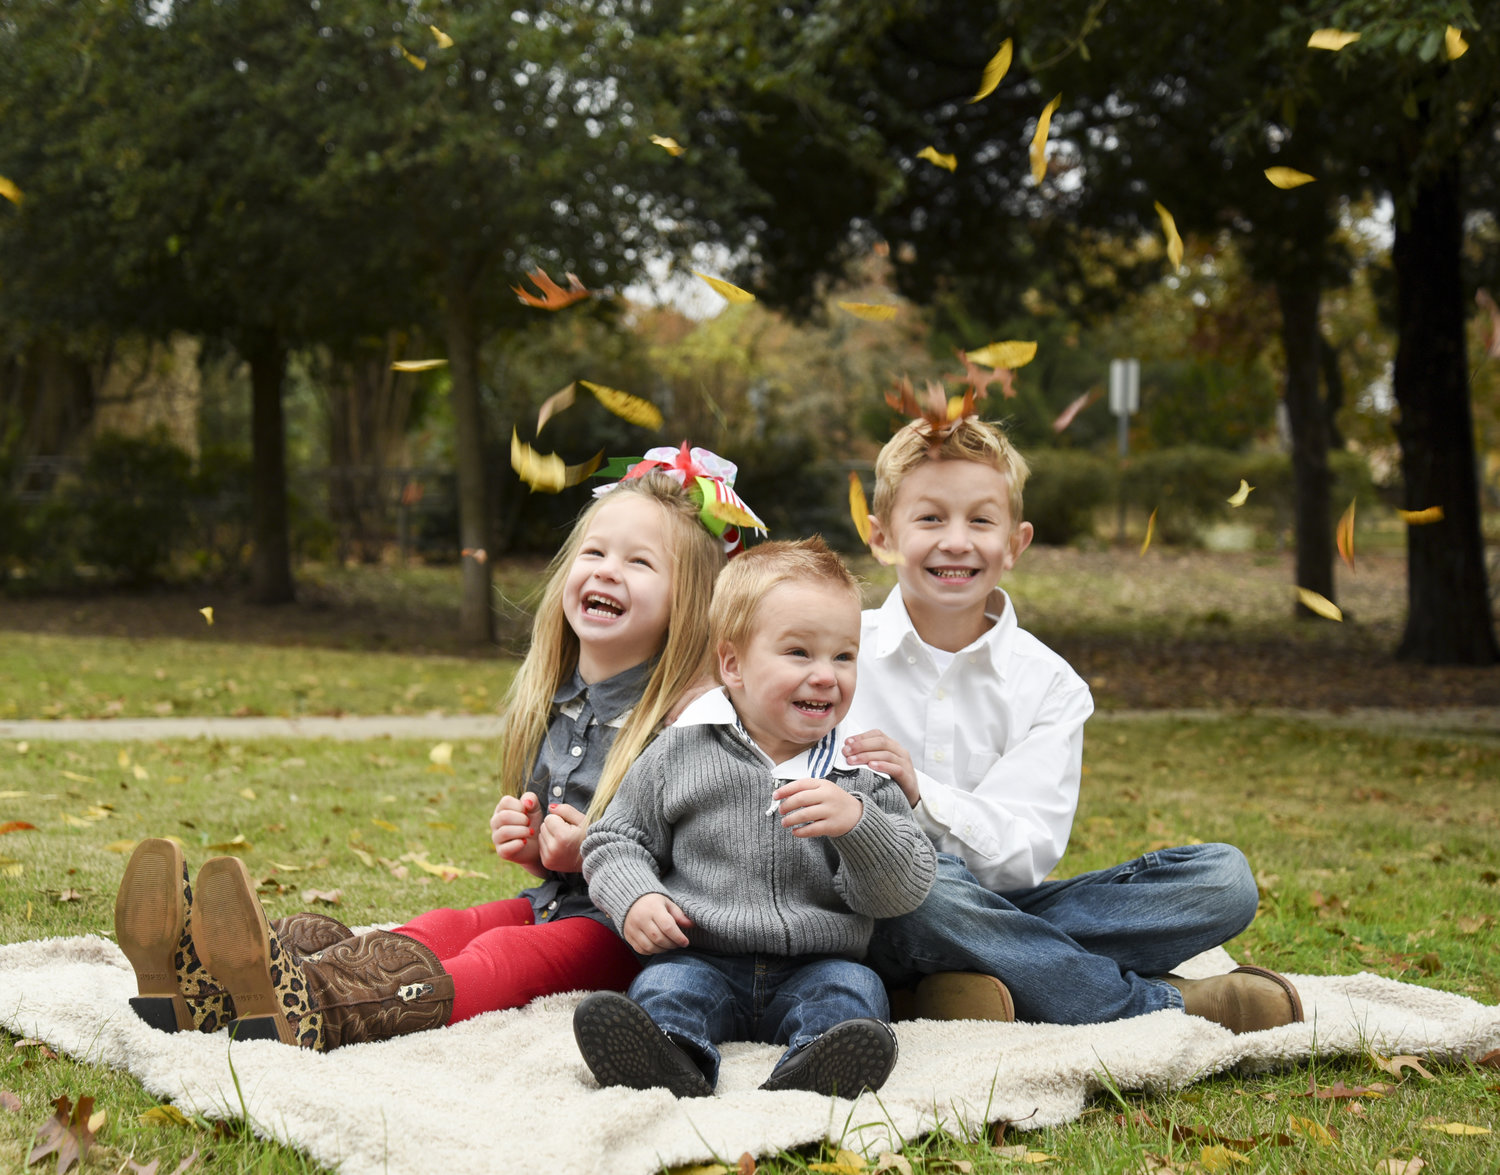 First, get in touch - I'd love to get to know you, answer questions and find the perfect time to photograph your family.